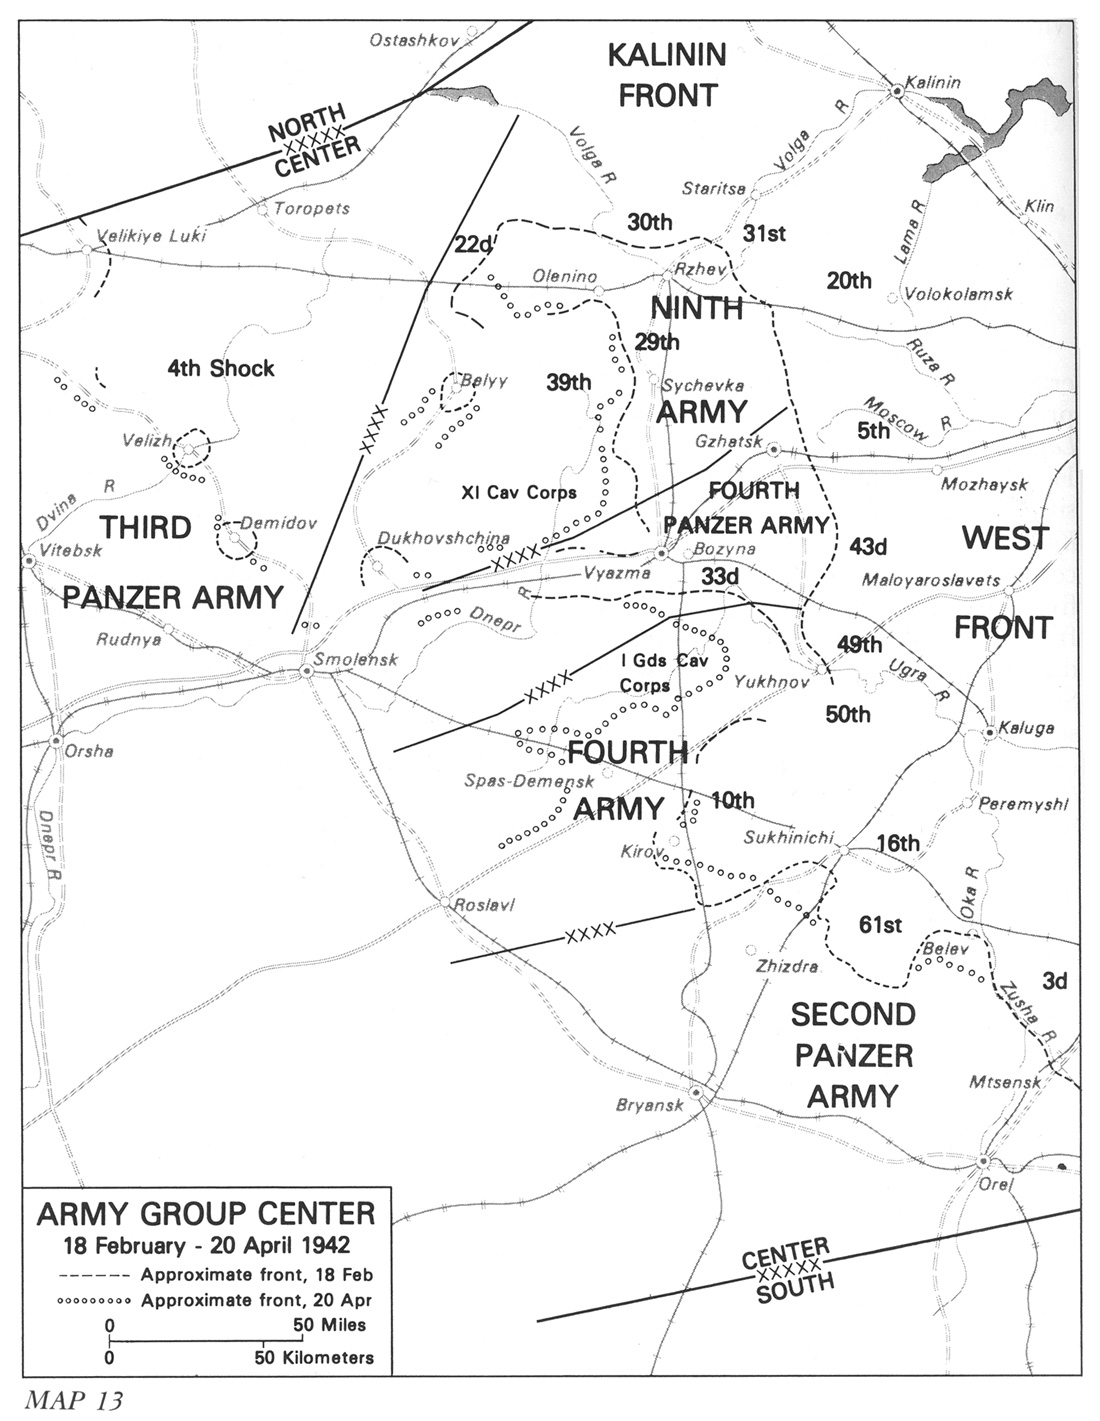 Ahc Army Group Center Annihilated At Moscow Then What